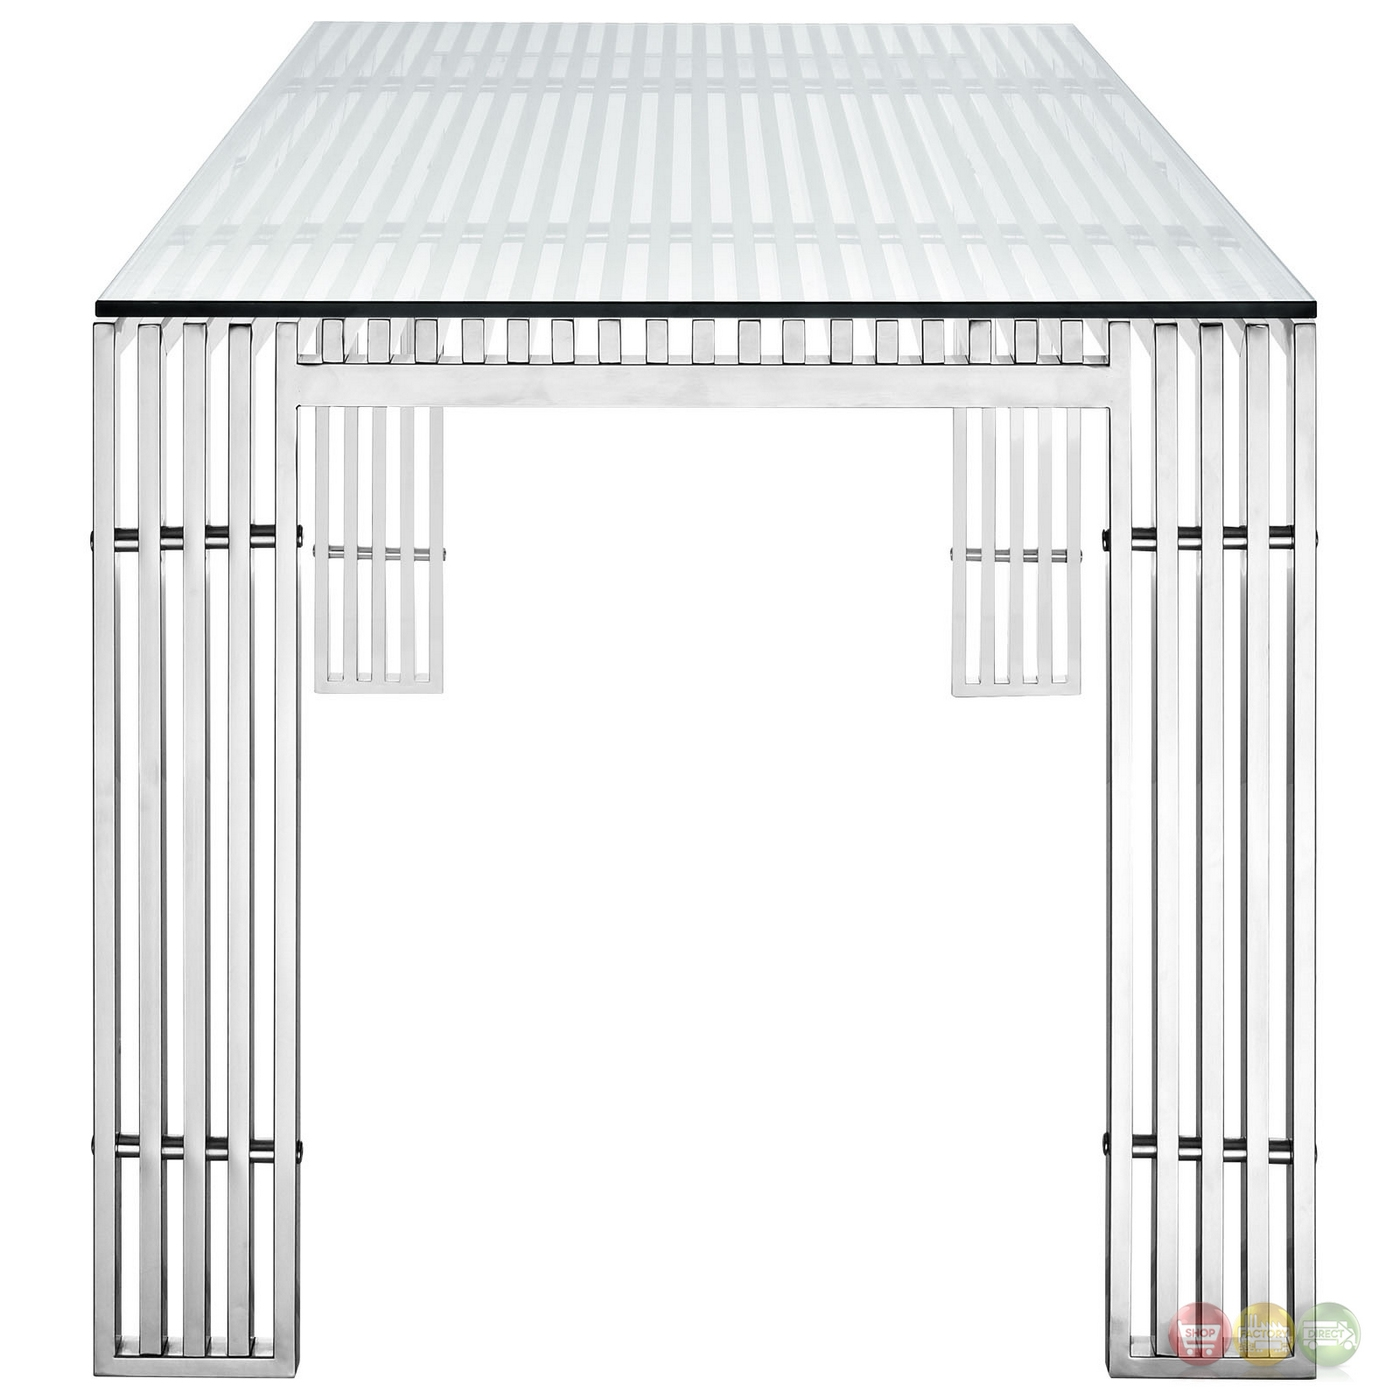 Gridiron Modernistic Stainless Steel Dining Table With  : gridiron modernistic stainless steel dining table with glass top silver 6 from shopfactorydirect.com size 1400 x 1400 jpeg 363kB